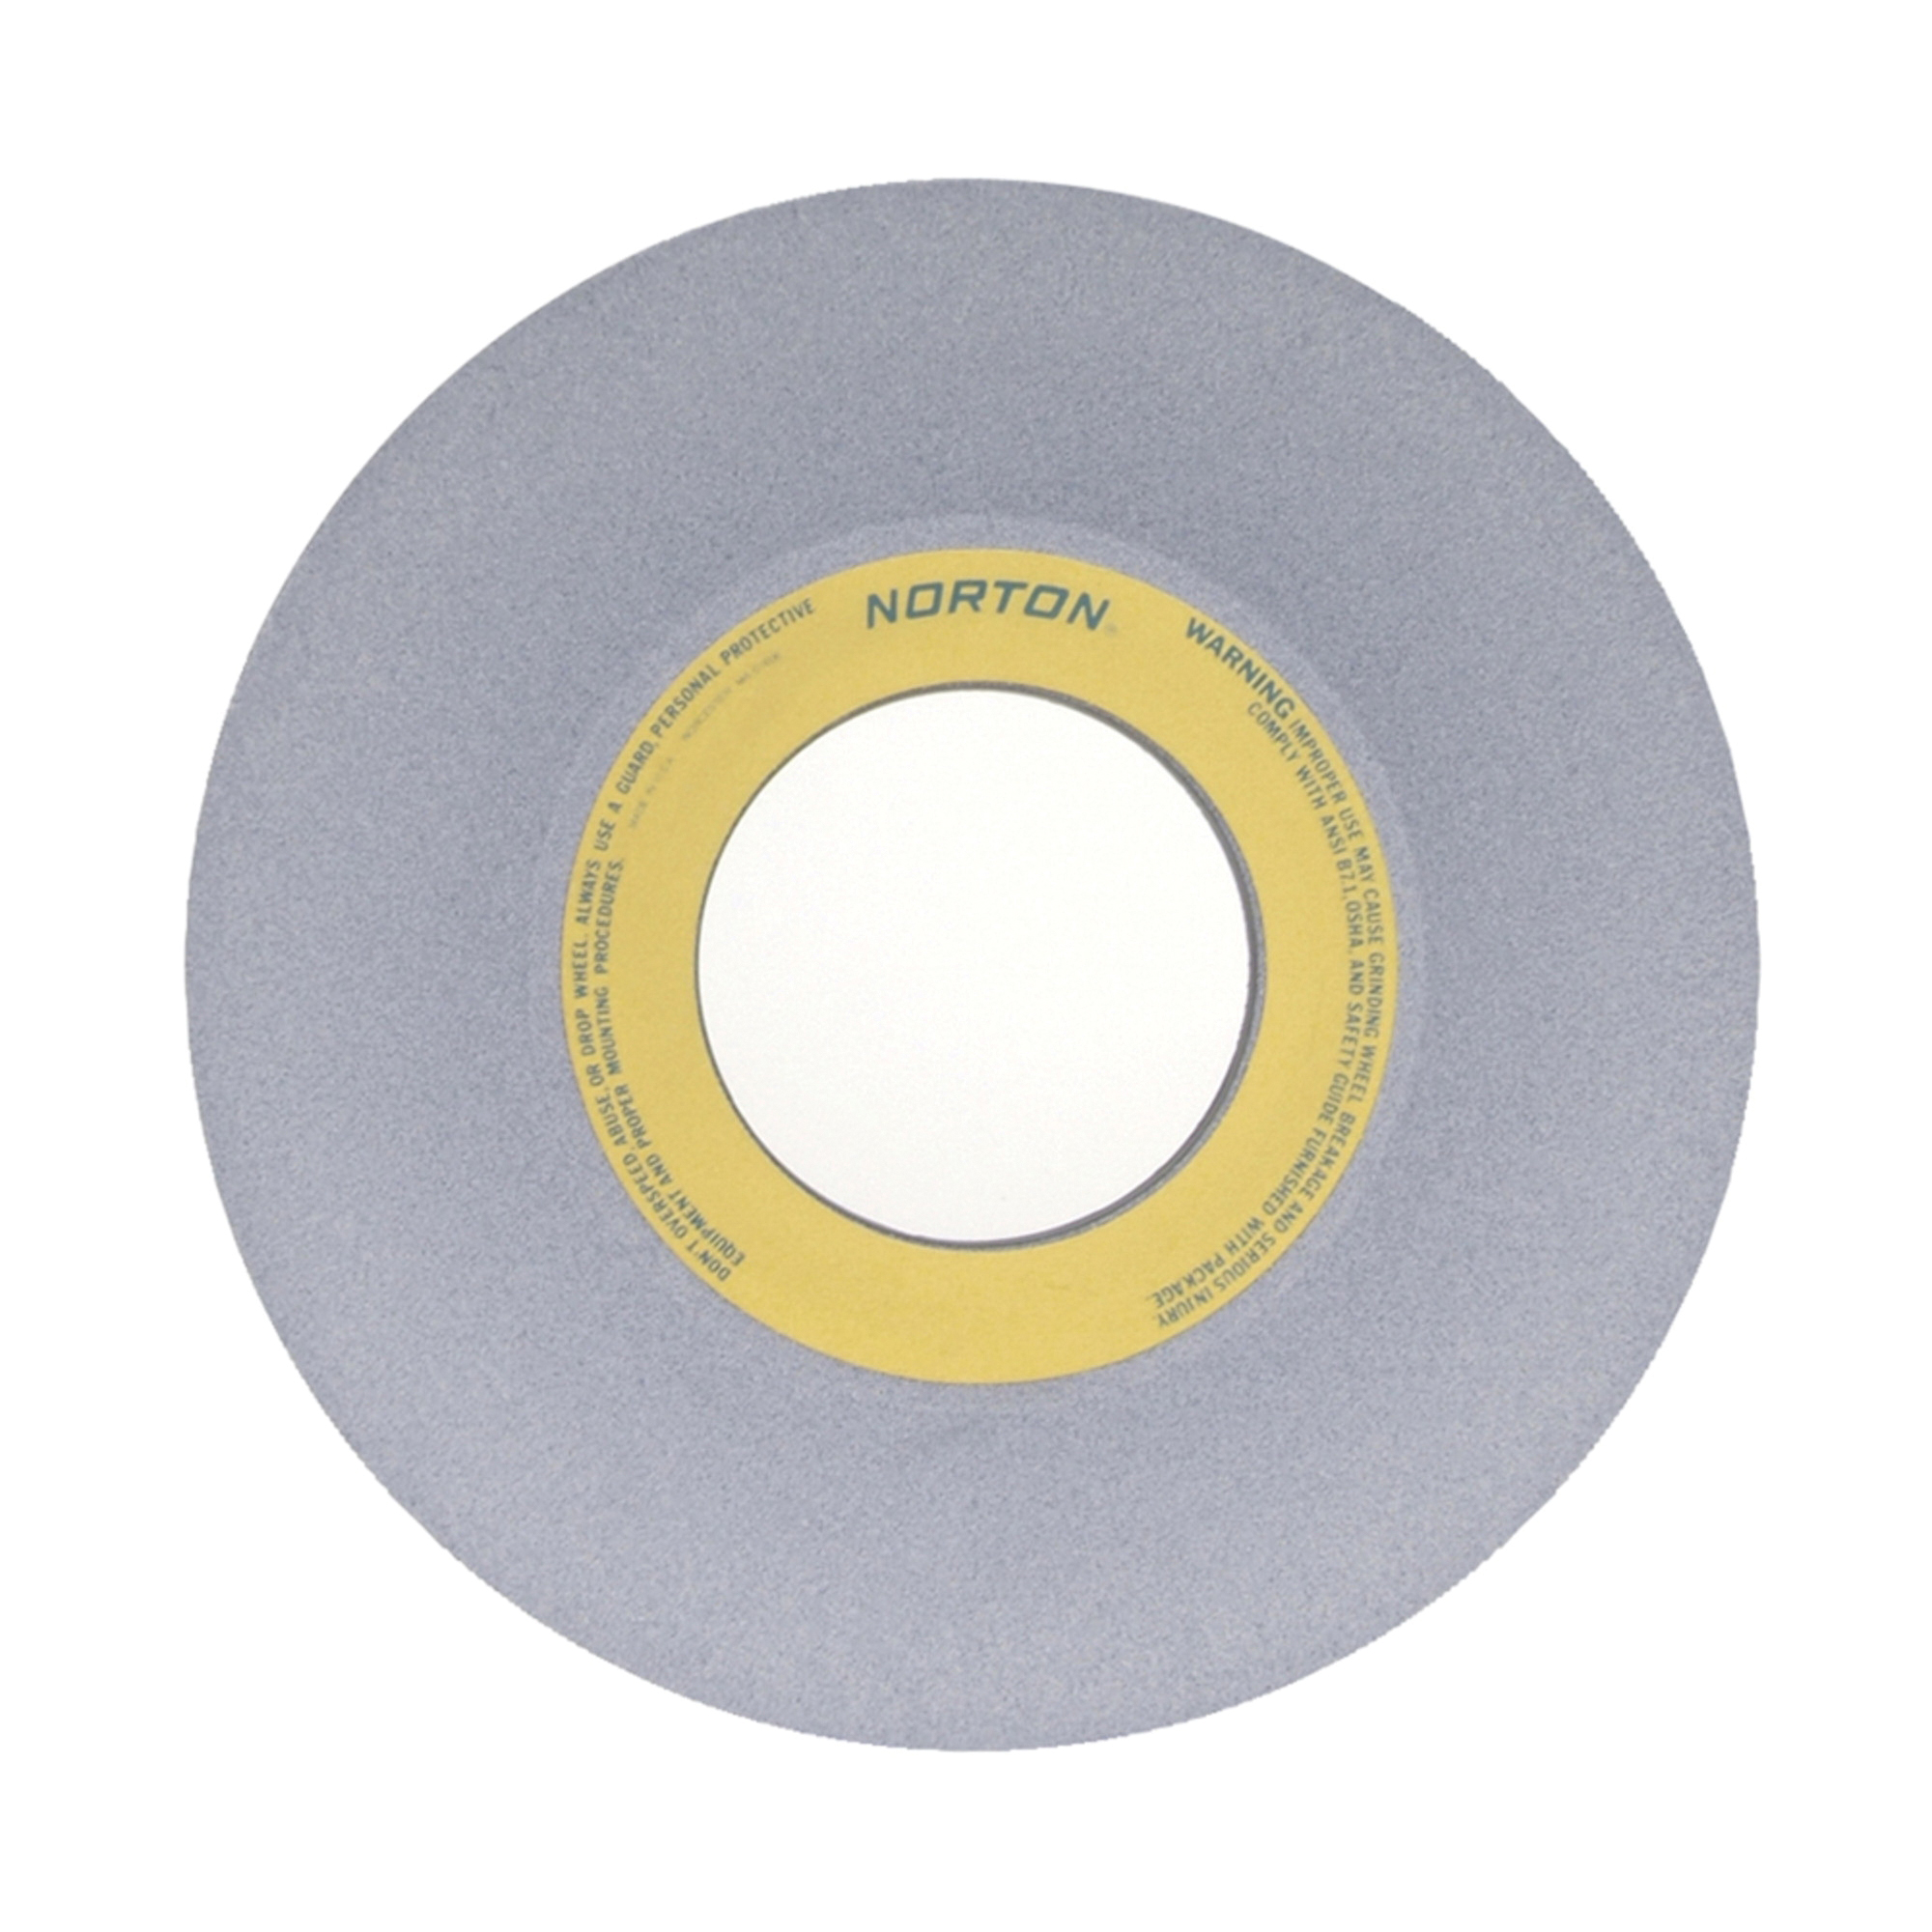 Norton® 66253364375 32A 1-Side Concaved Toolroom Wheel, 14 in Dia x 1-1/2 in THK, 5 in Center Hole, 60 Grit, Aluminum Oxide Abrasive